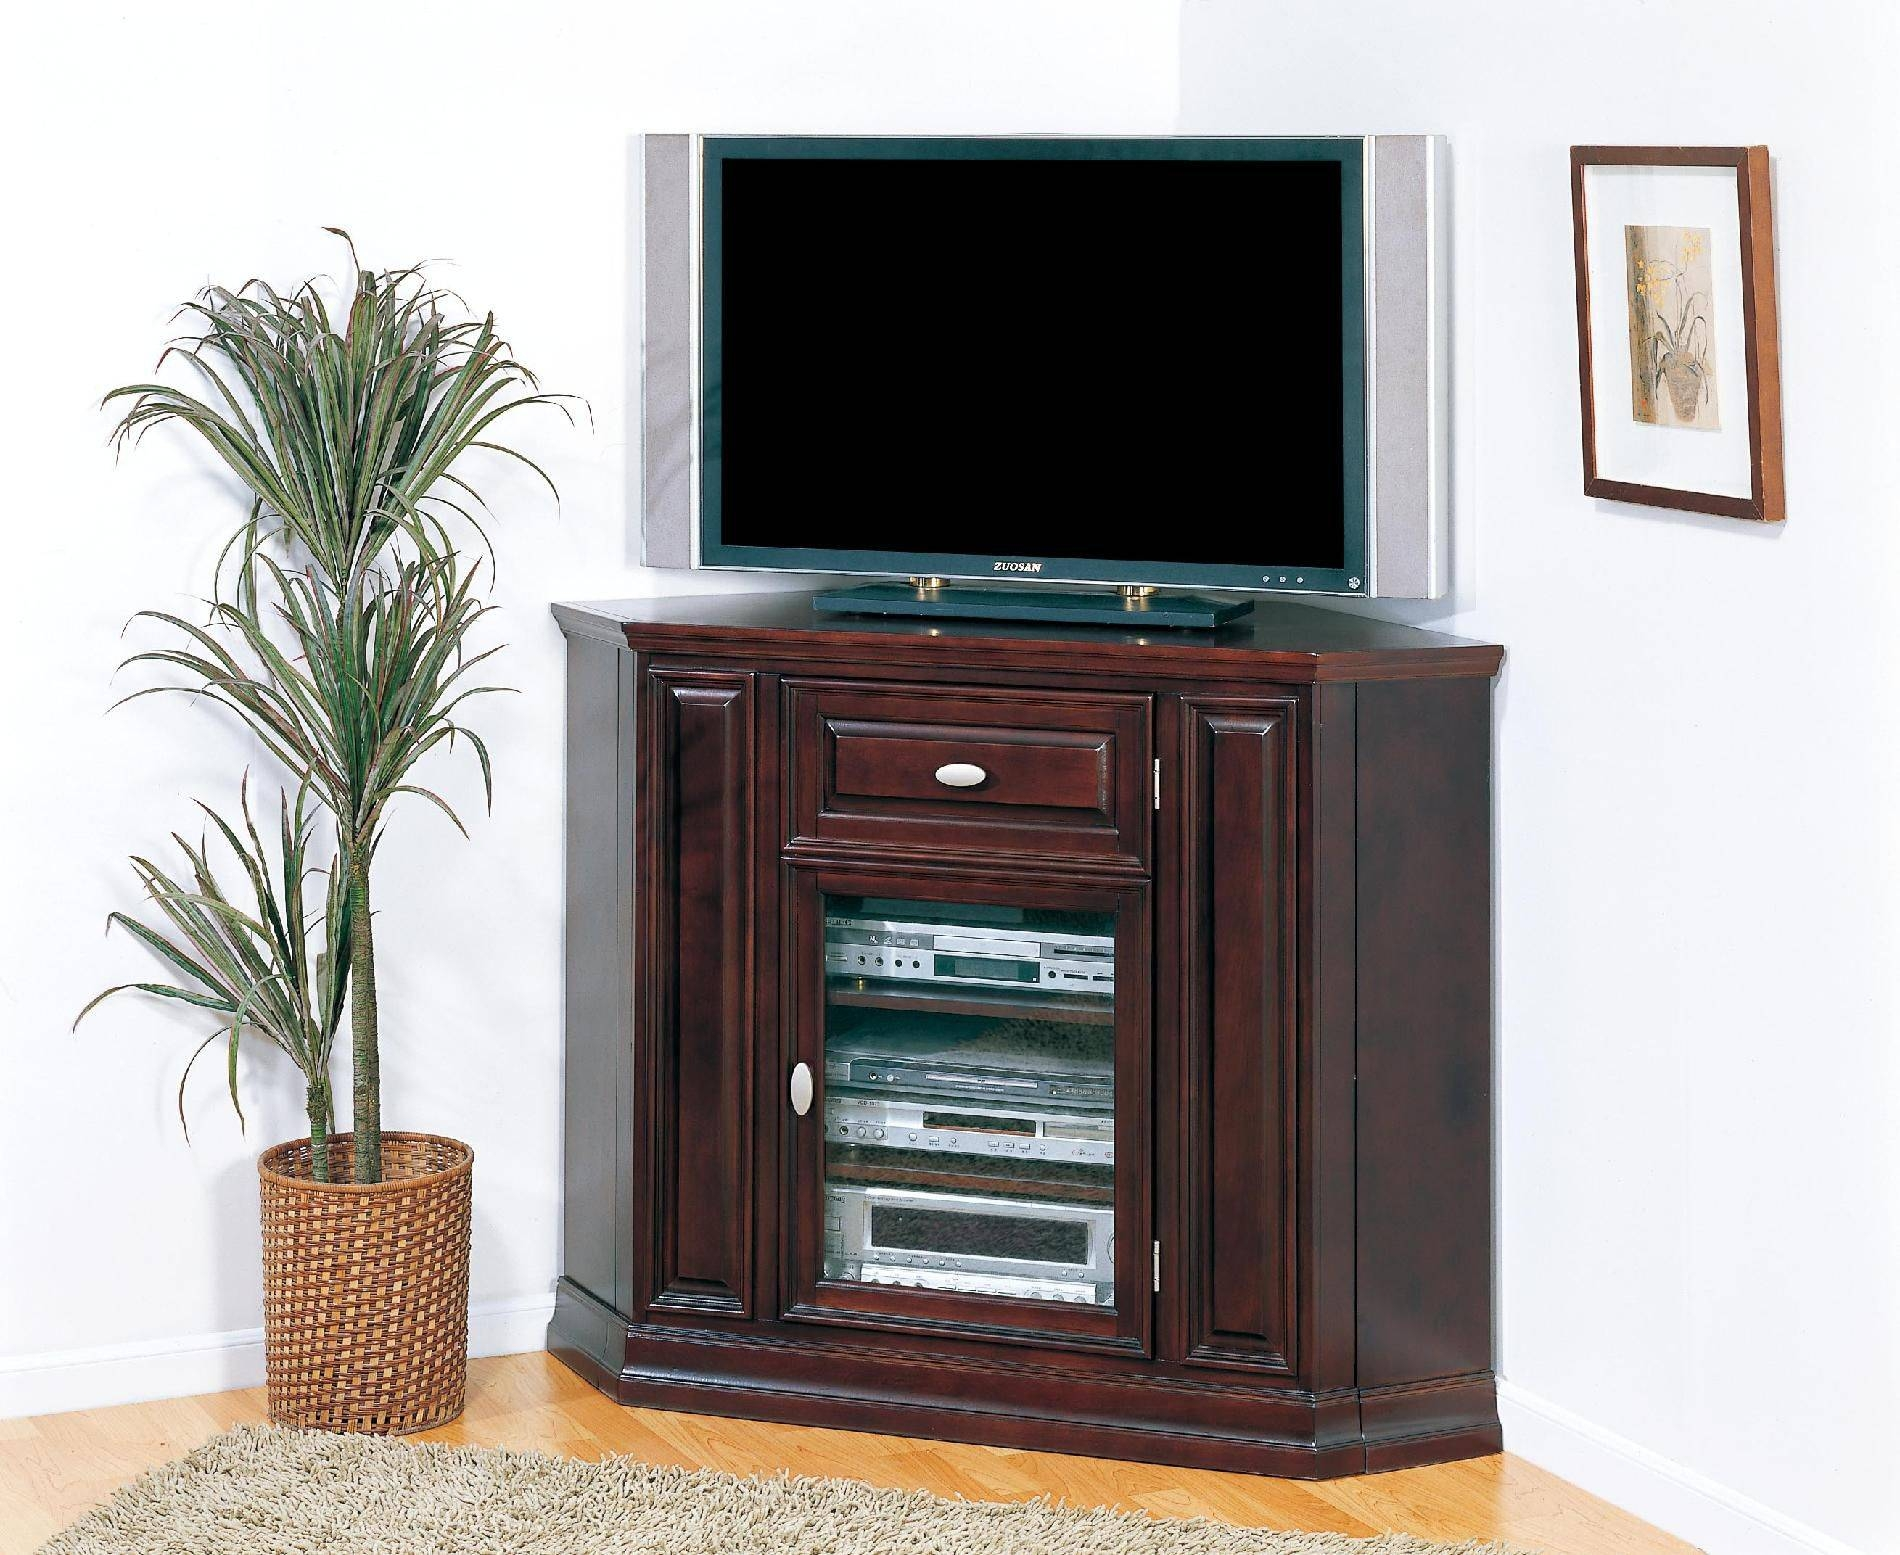 Furniture. Tall Dark Brown Wood Corner Tv Cabinet For Flat Screen within Dark Brown Corner Tv Stands (Image 8 of 15)